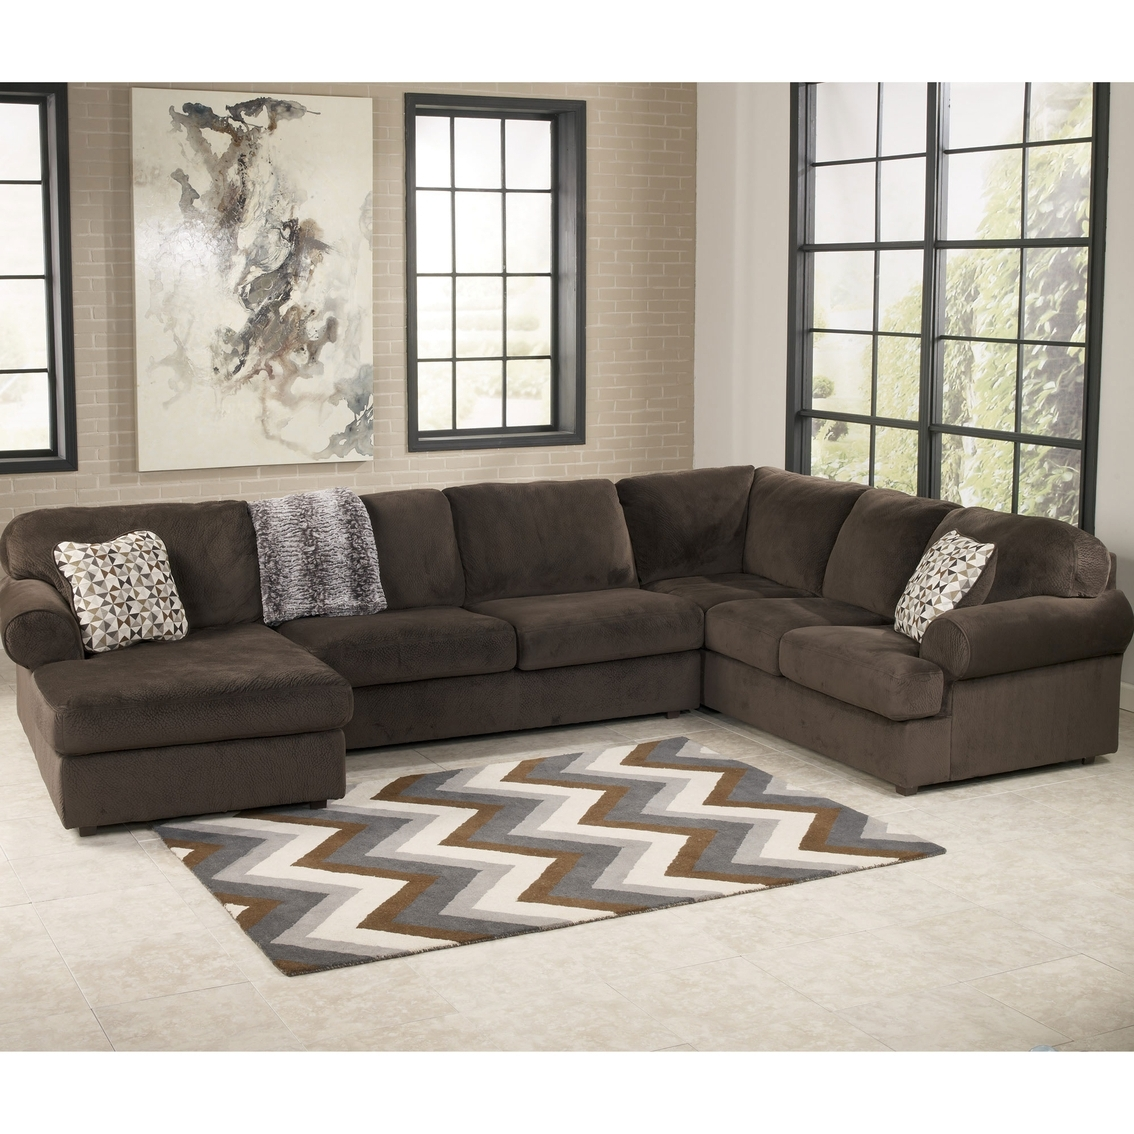 Austin Sectional Sofas Intended For 2019 Signature Designashley Jessa Place 3 Pc (View 7 of 20)